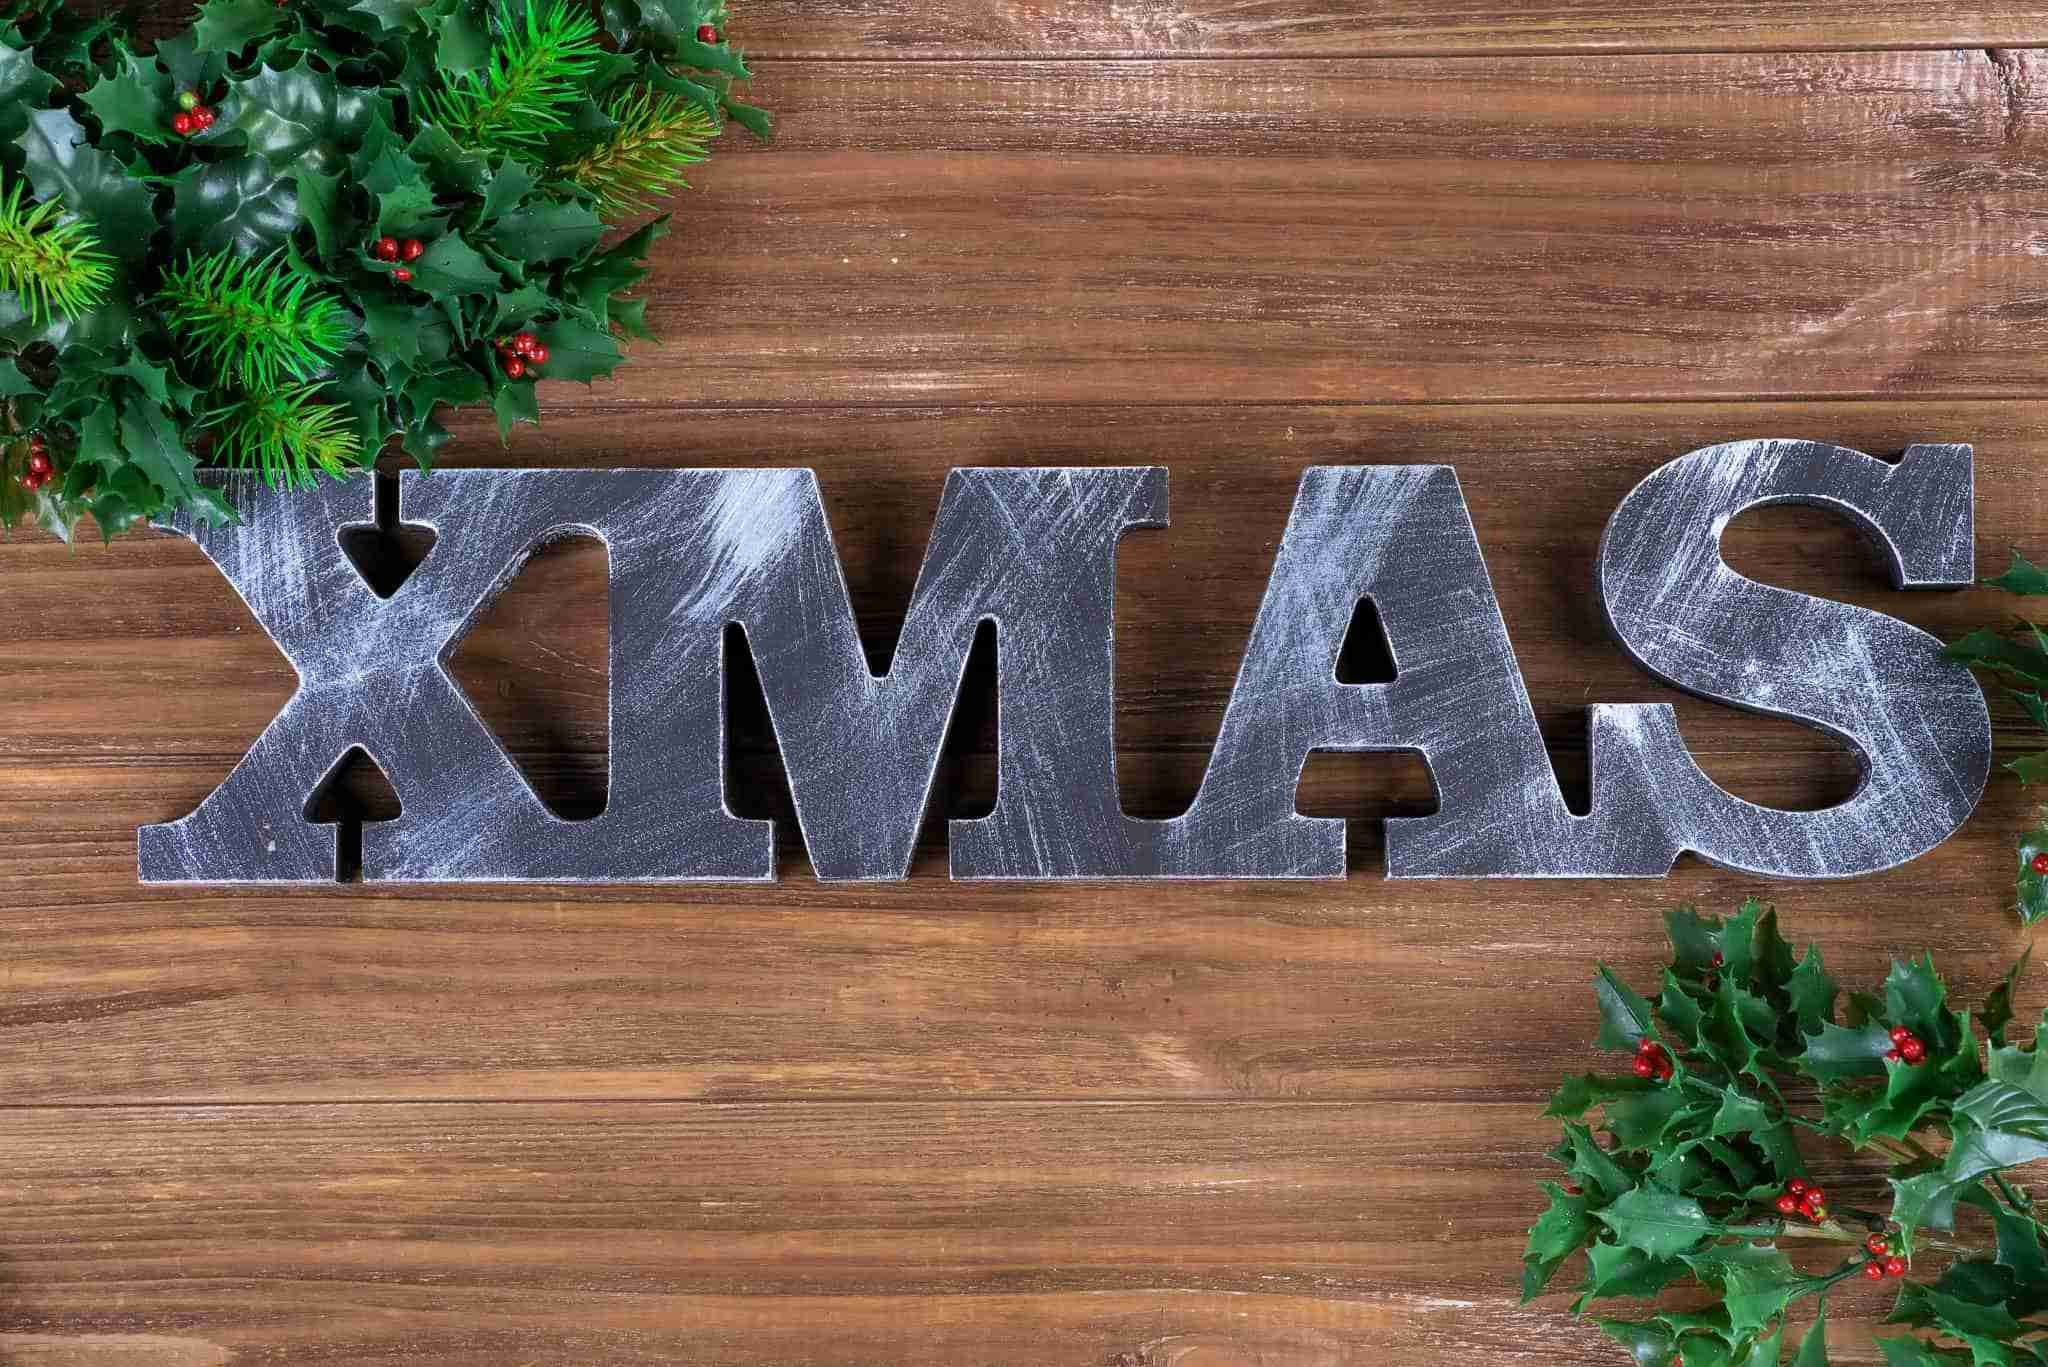 Wooden letters XMAS with fit branches on a wooden background